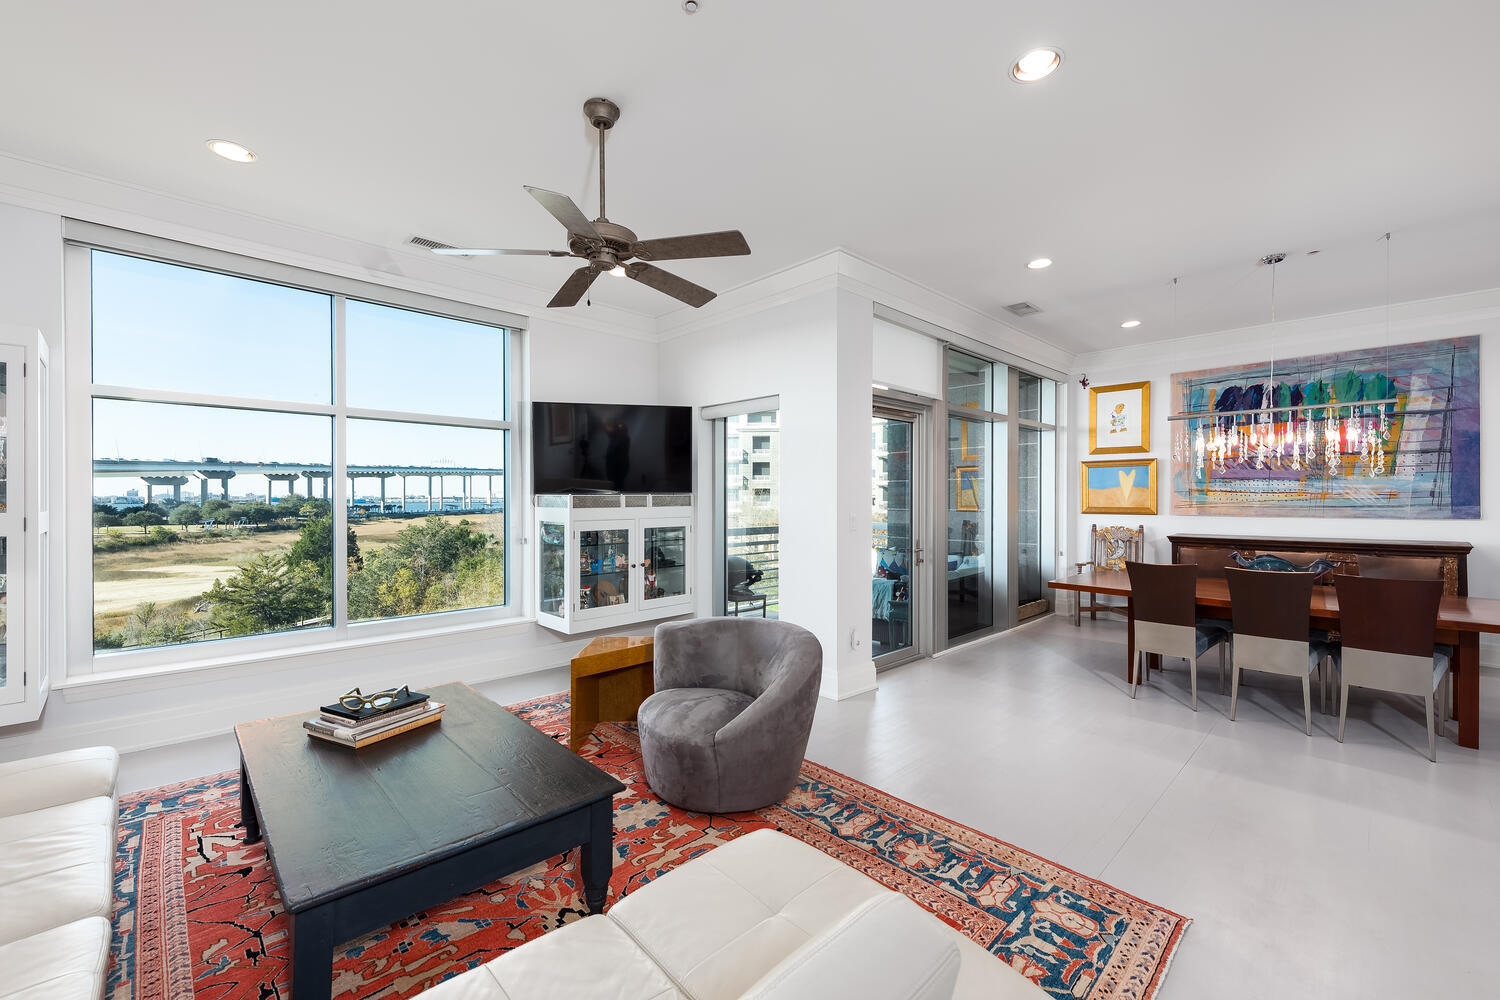 Tides Condominiums Condos For Sale - 238 Cooper River, Mount Pleasant, SC - 16